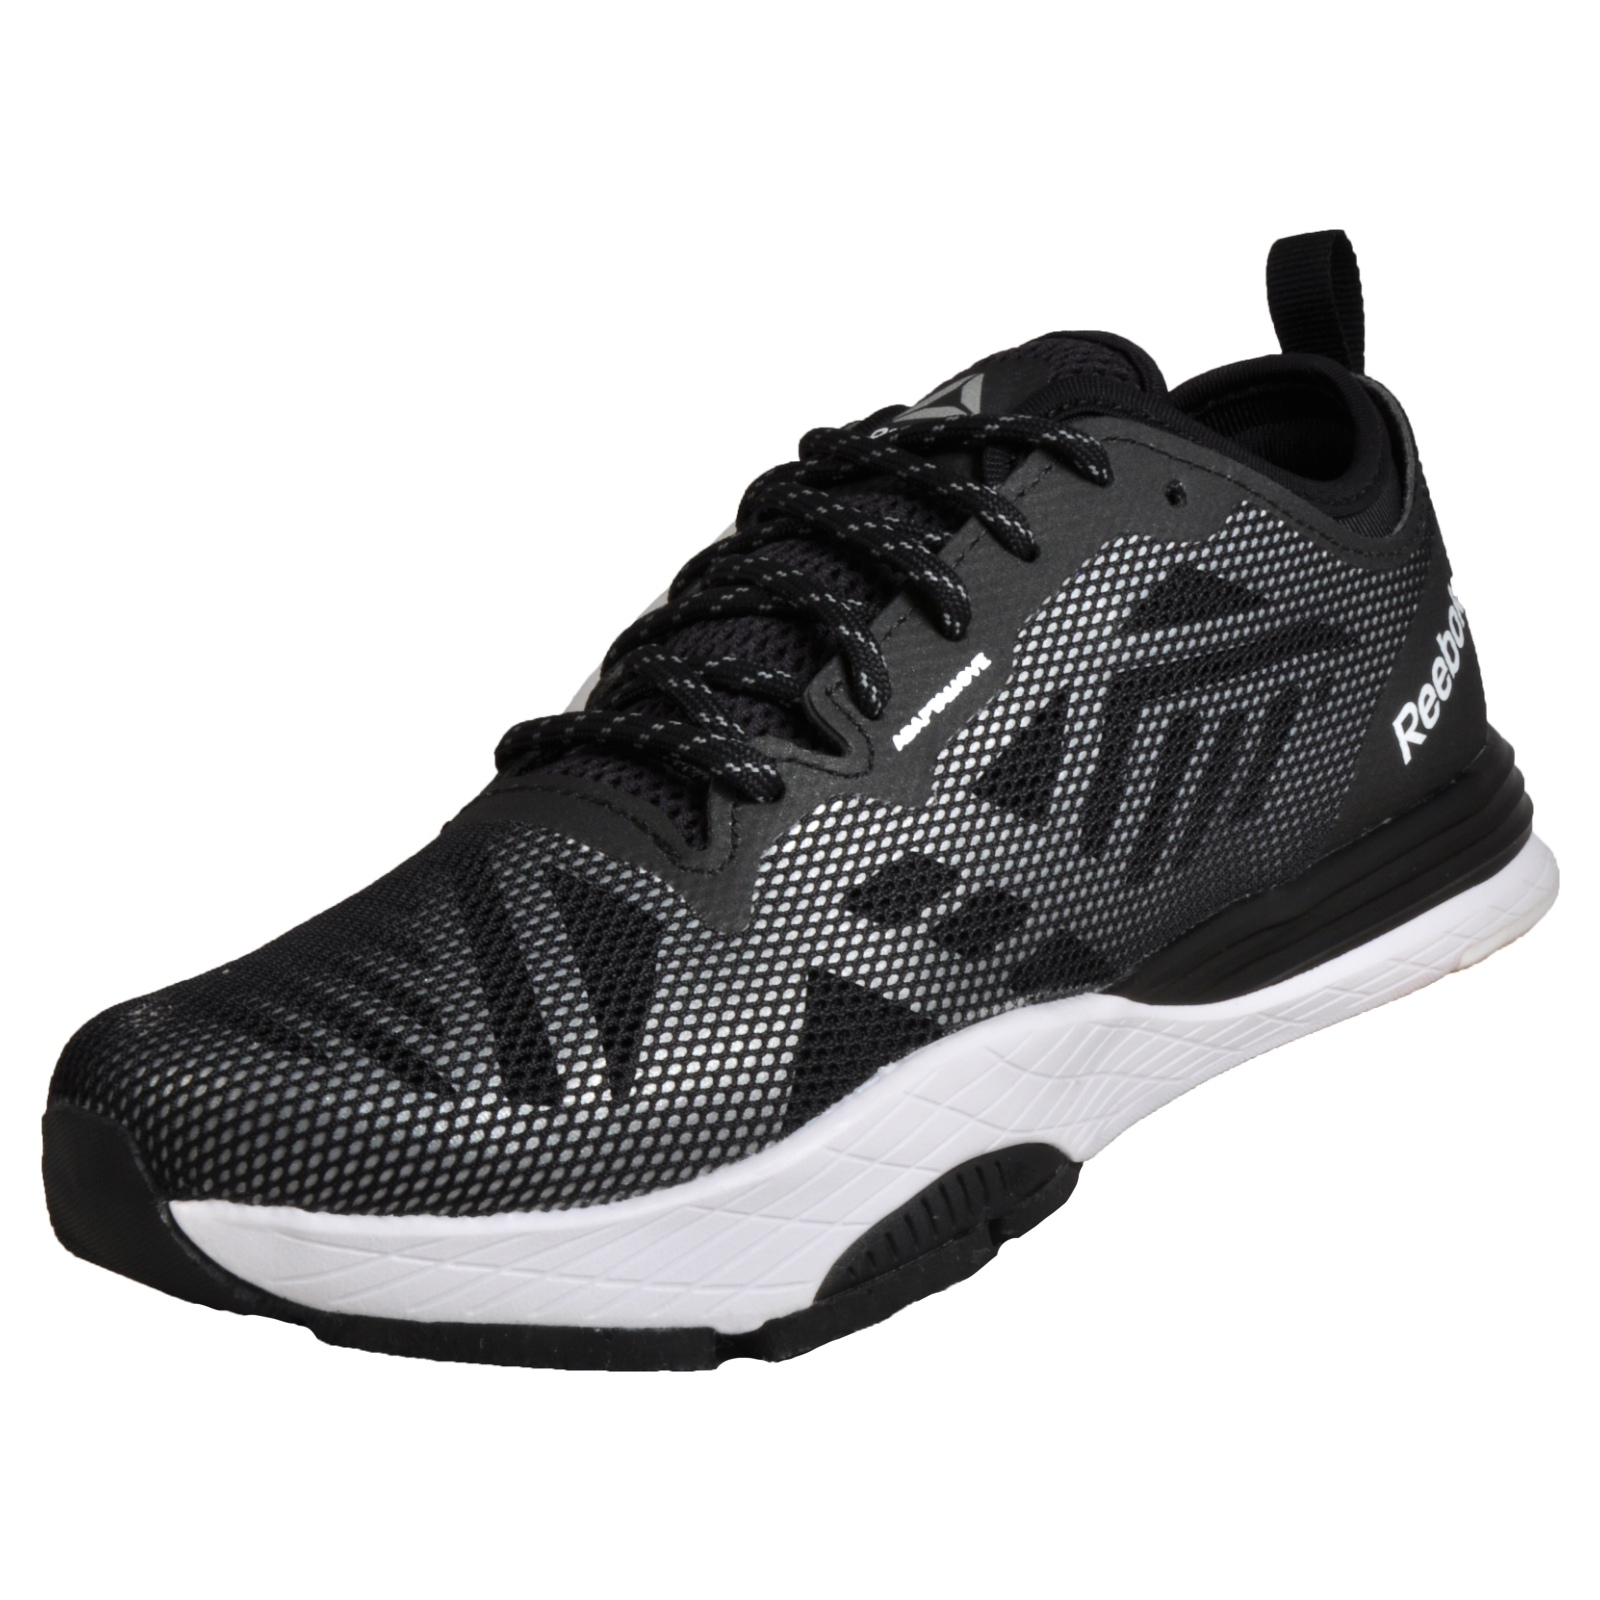 283b8e89230a66 Details about Reebok Cardio Ultra 2.0 Womens Fitness Training Gym Workout  Trainers Shoes Black